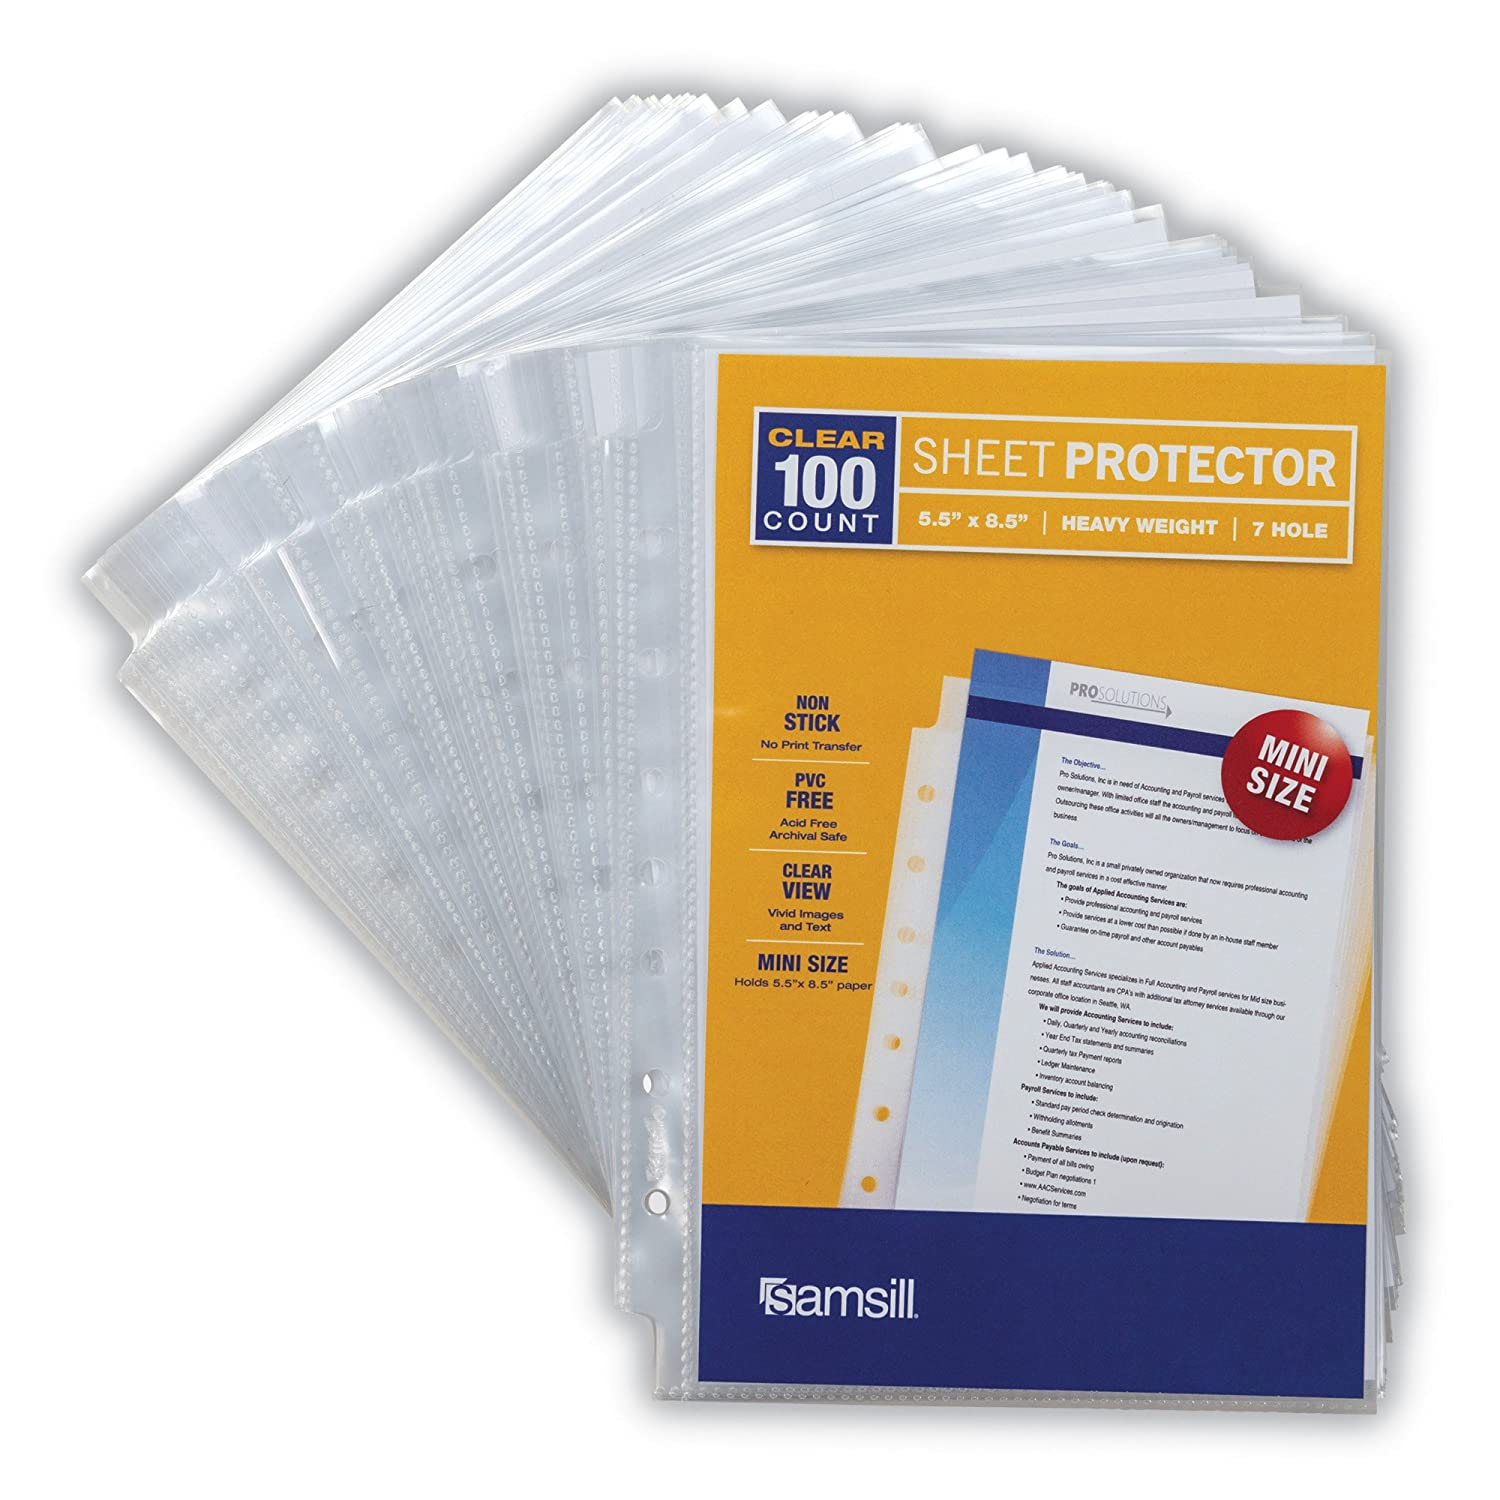 Samsill Heavyweight Clear Mini Binder Sheet Protectors, Top Loading 7 Hole 5.5 x 8.5 inch Page Protectors, Archival Safe, Box of 100 41210